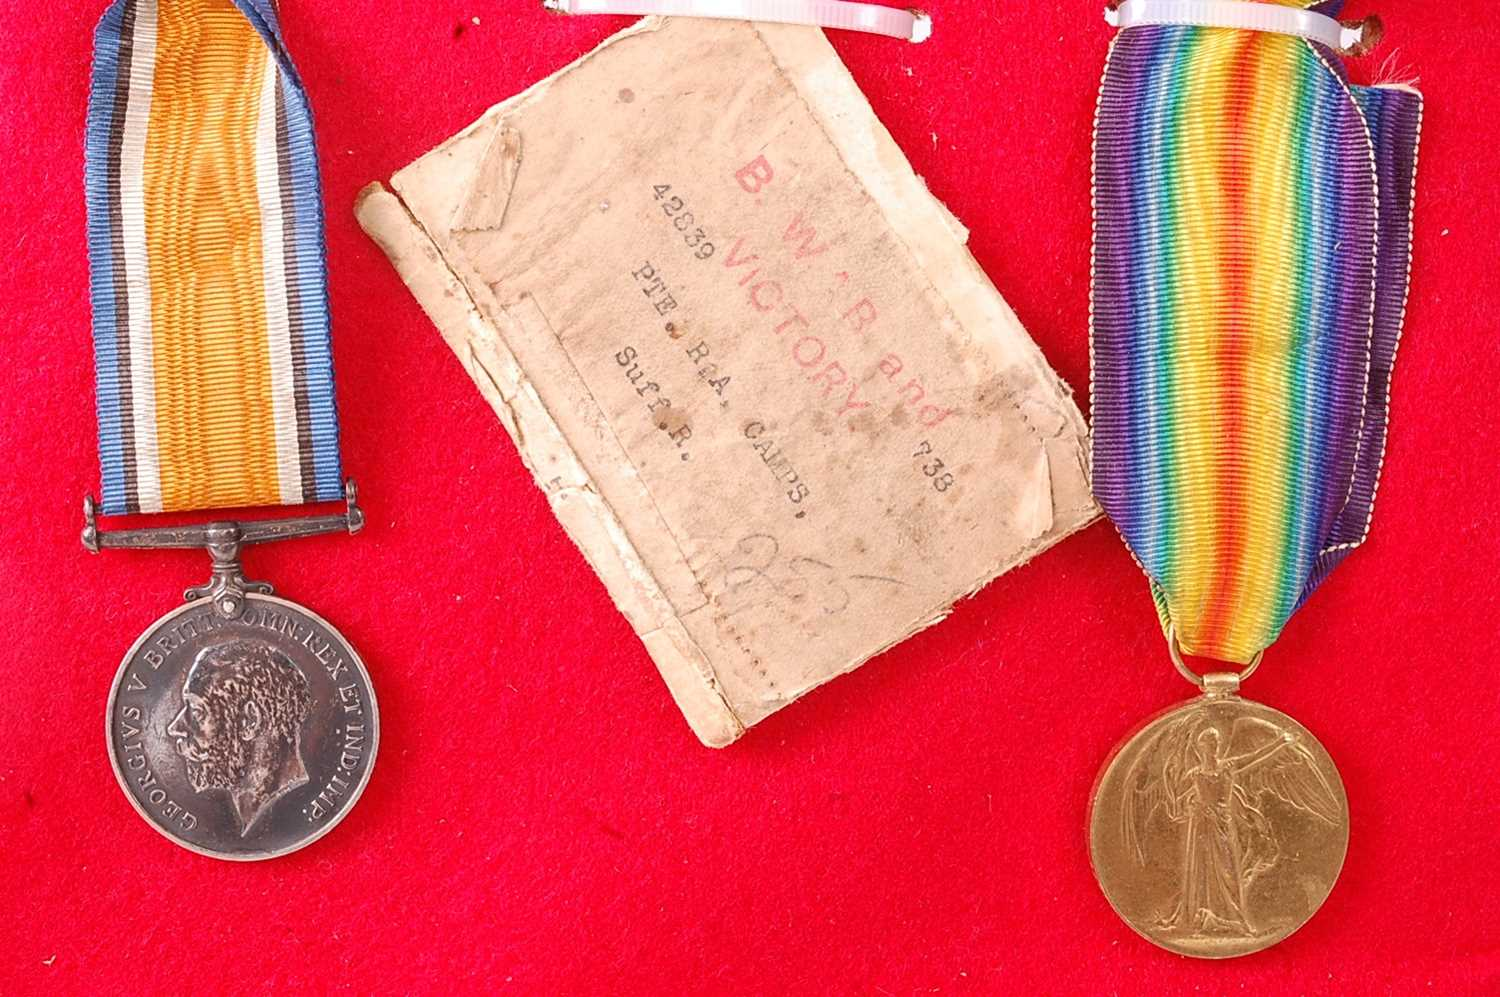 A WW I British War and Victory pair, naming 42839 PTE. R.A. CAMPS. SUFF. R., together with the